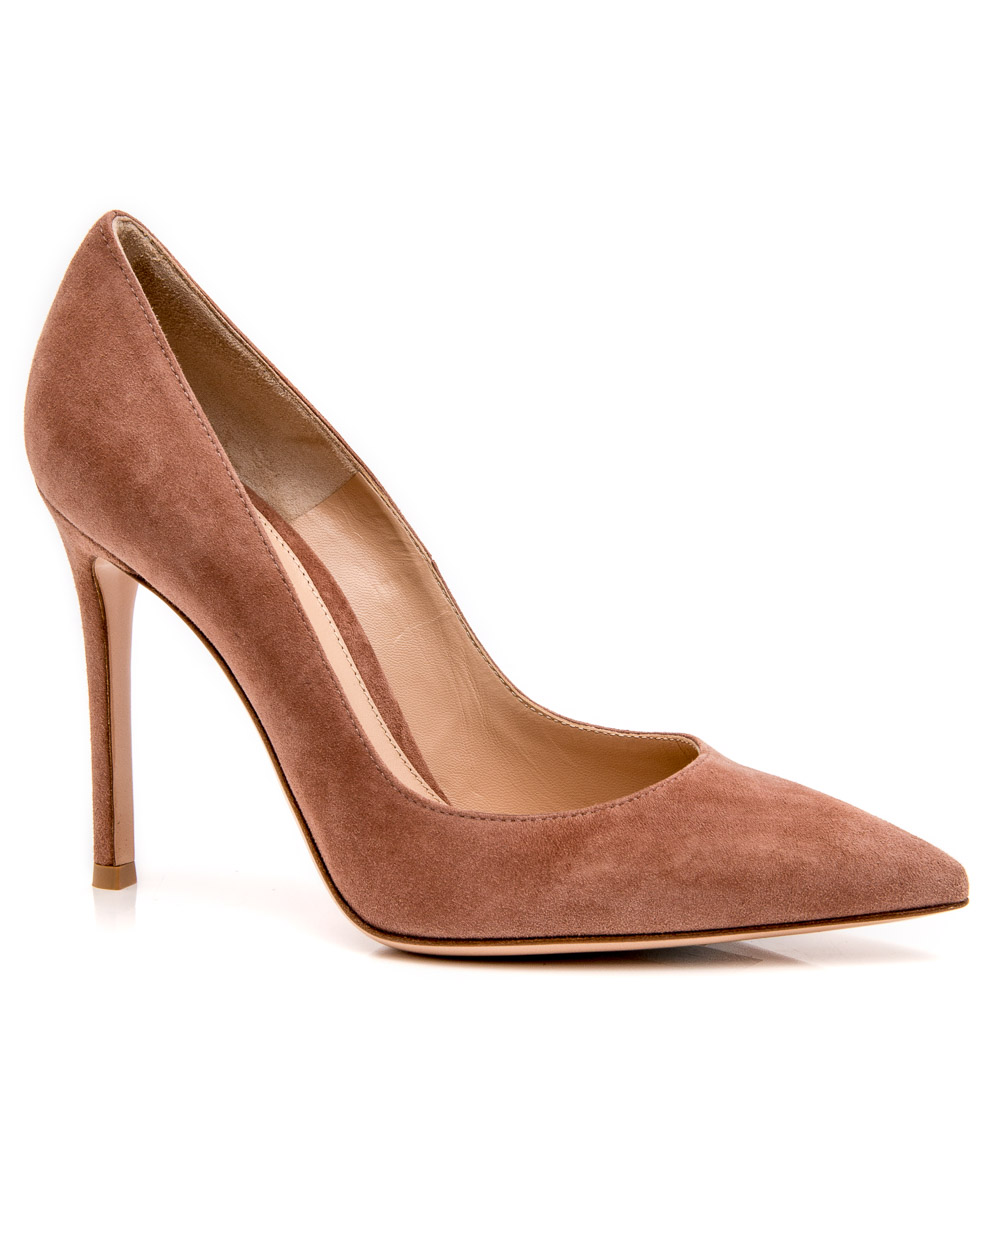 Gianvito Rossi Dubai | Gianvito Rossi Pump | Rossi Mens Shoes